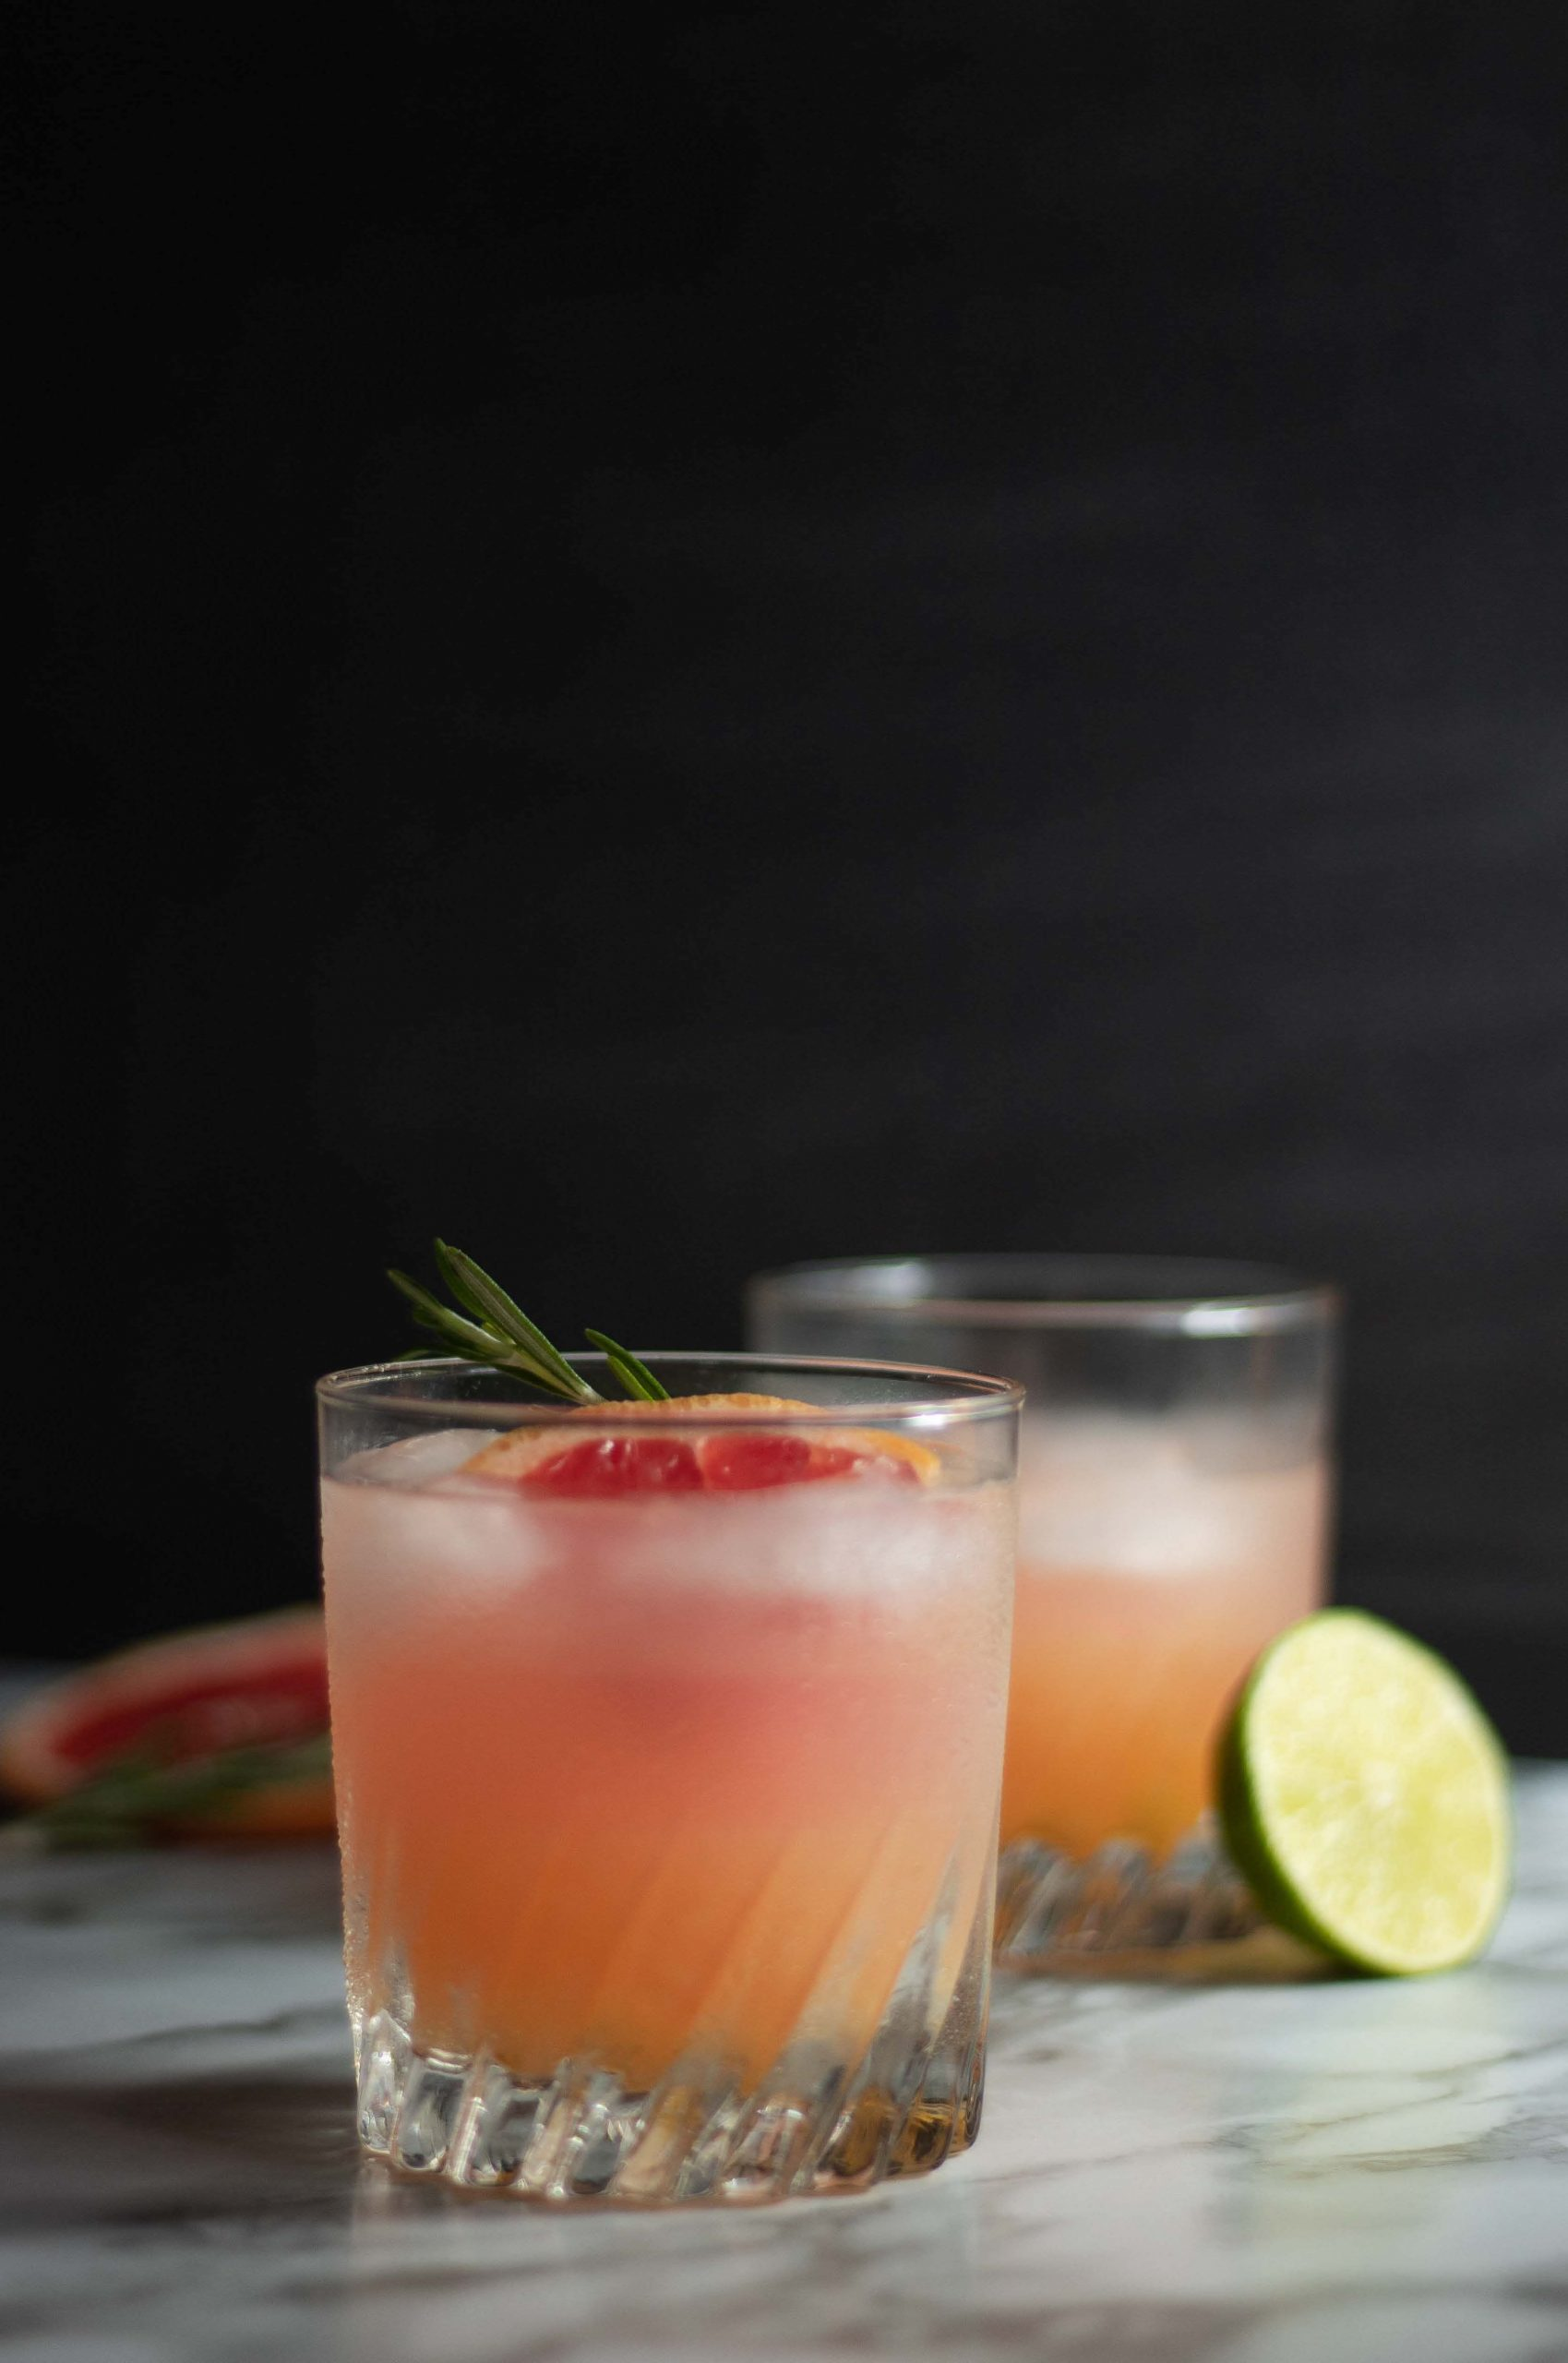 Two glasses of an ombre alcoholic drink with garnish